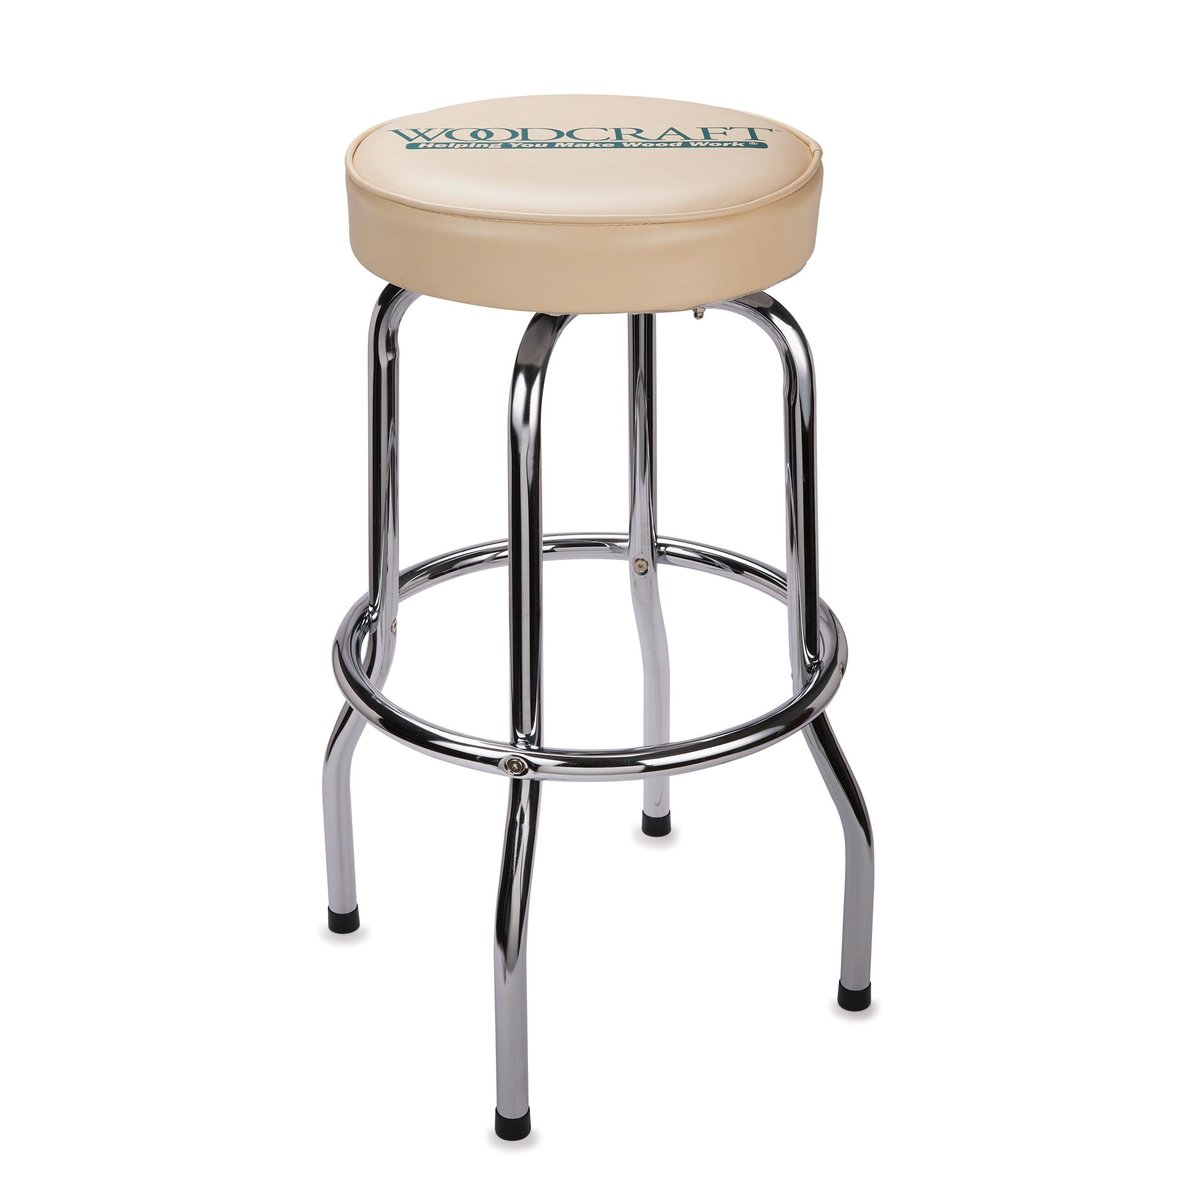 Astonishing Woodcraft Woodcraft Shop Stool Andrewgaddart Wooden Chair Designs For Living Room Andrewgaddartcom